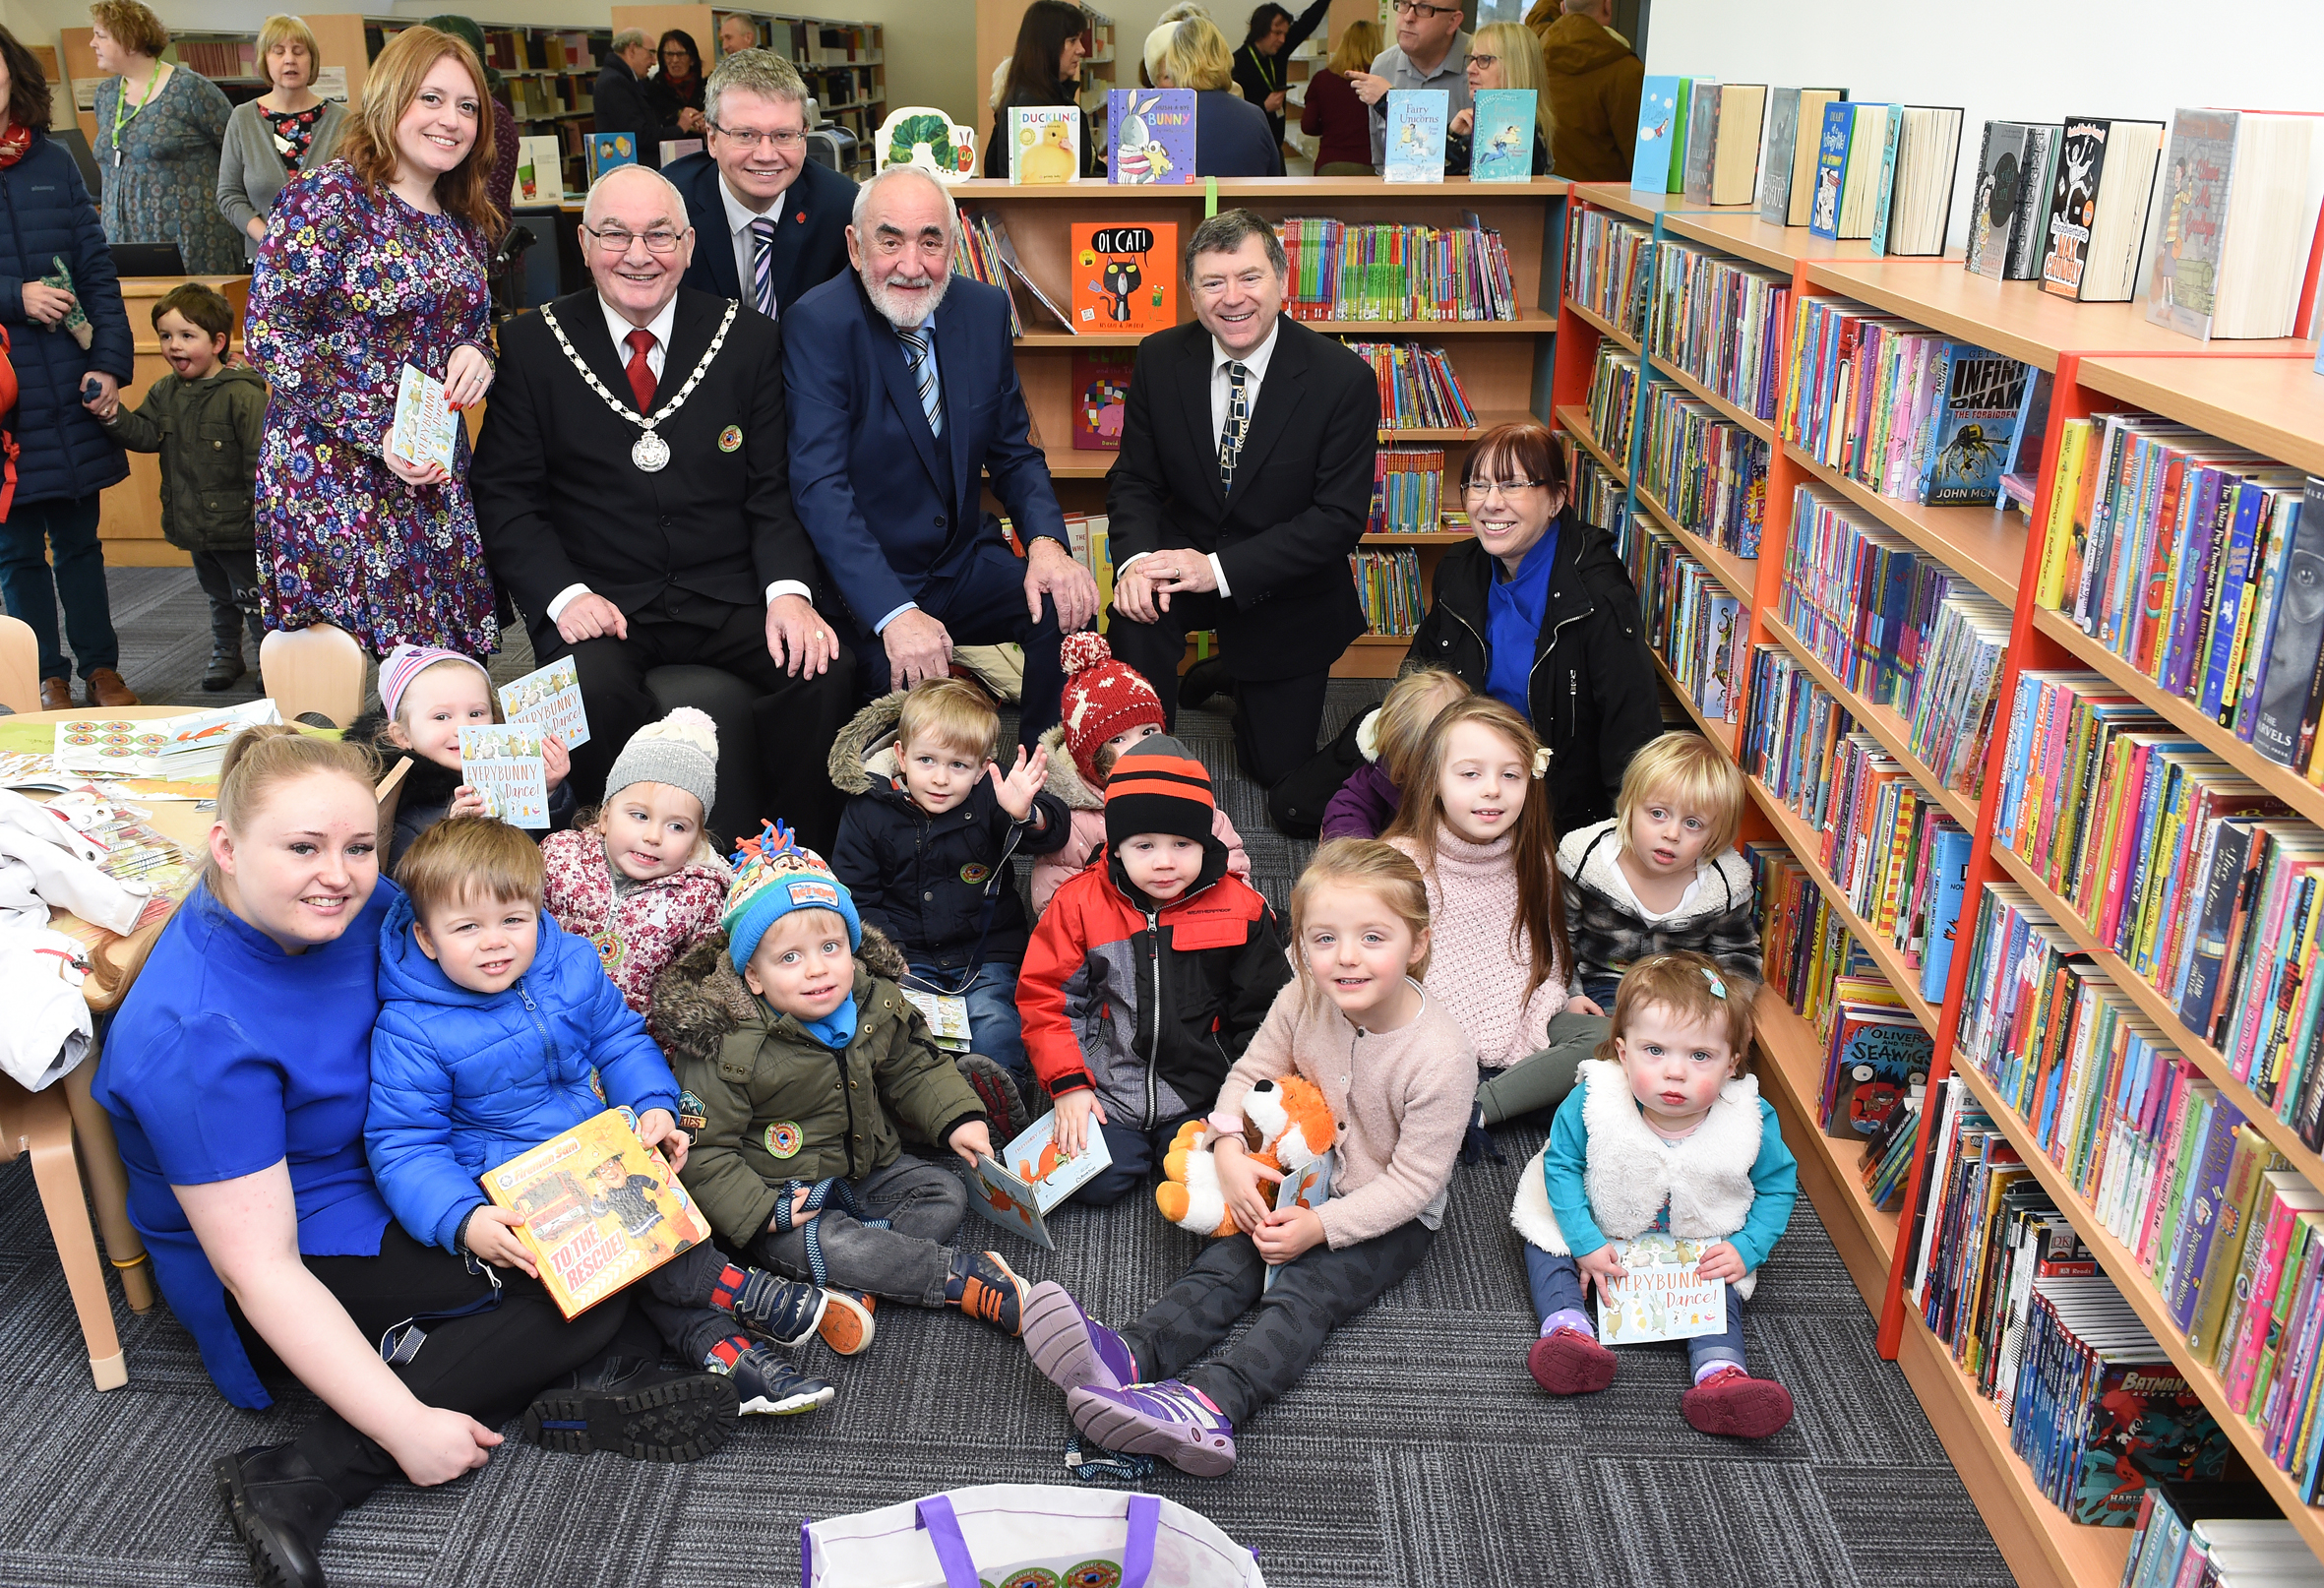 Townley House Nursery School with Jill Connolly reading and learning development manager, the Chairman, County Councillors Michael Green, Jim Marsh and Peter Buckley